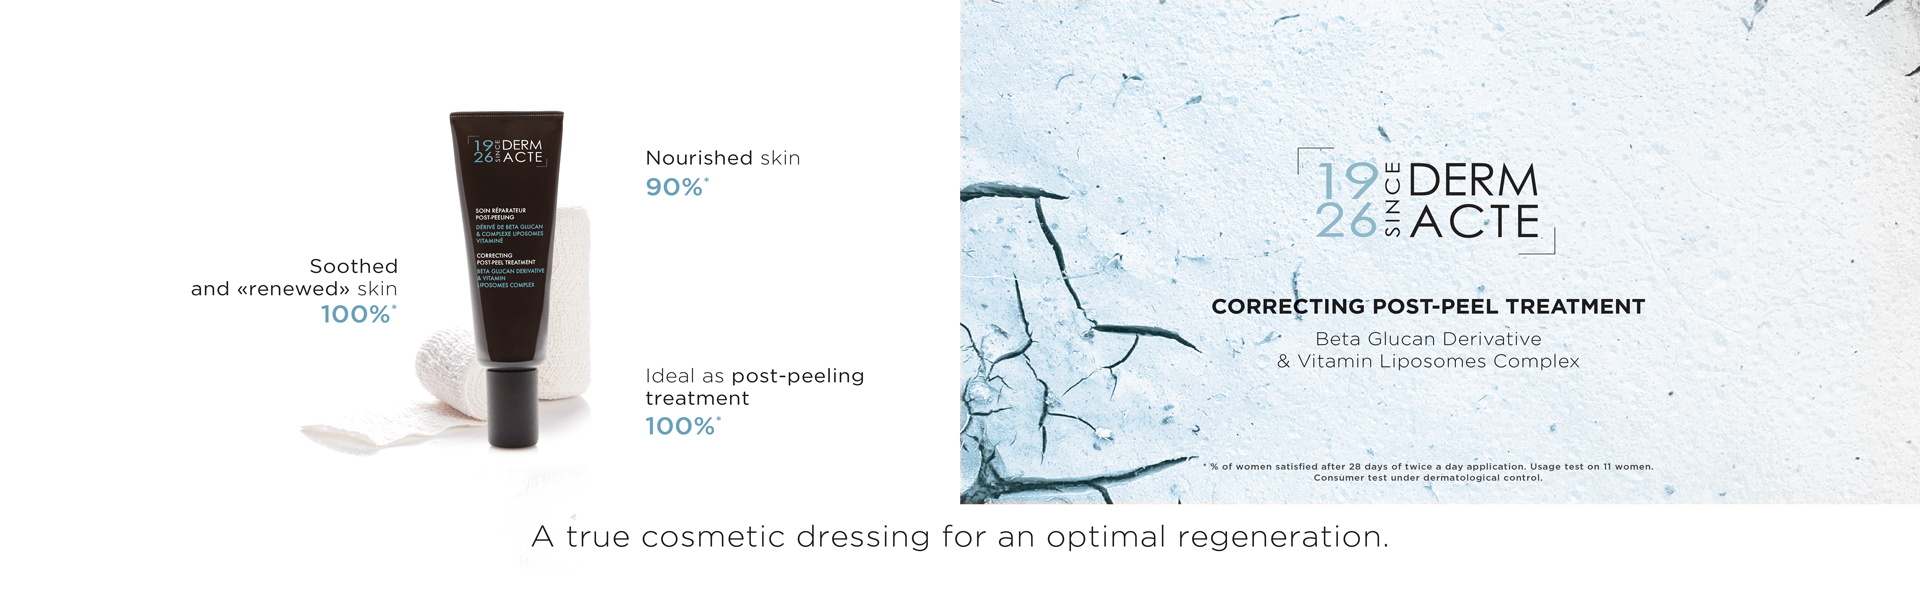 Correcting Post-Peel Treatment Derm Acte